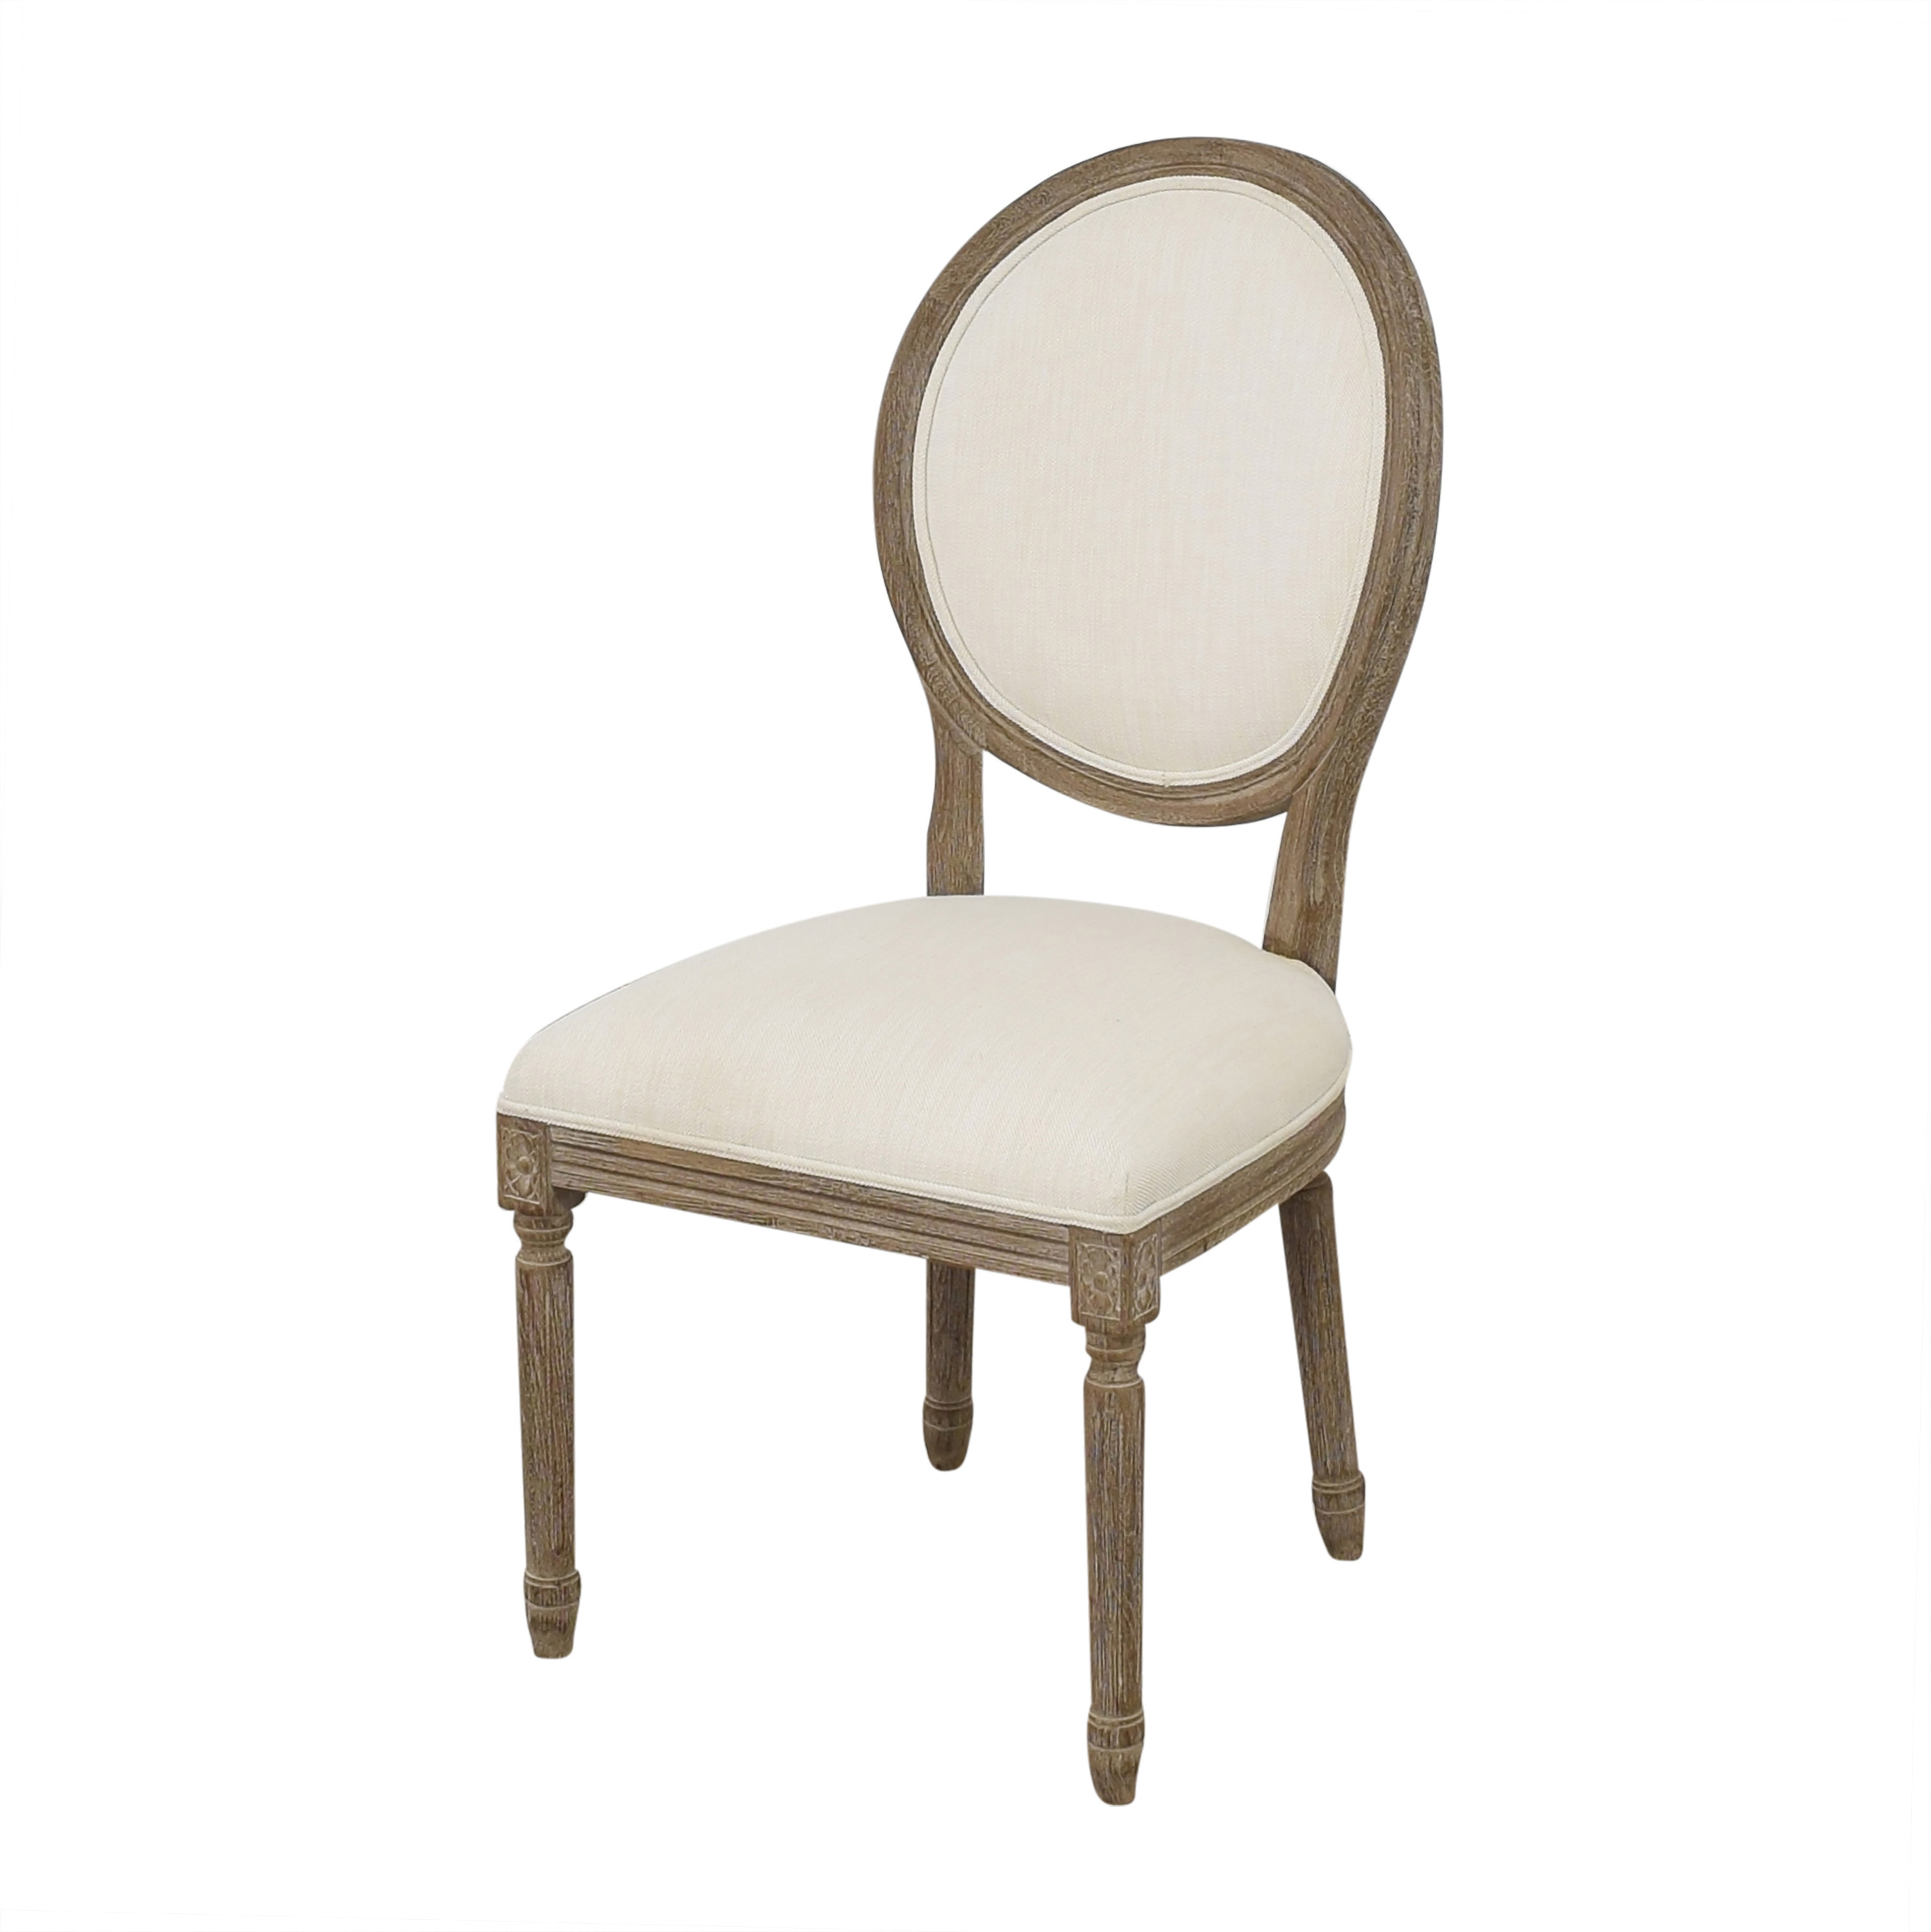 Restoration Hardware Restoration Hardware Vintage French Round Side Chair dimensions